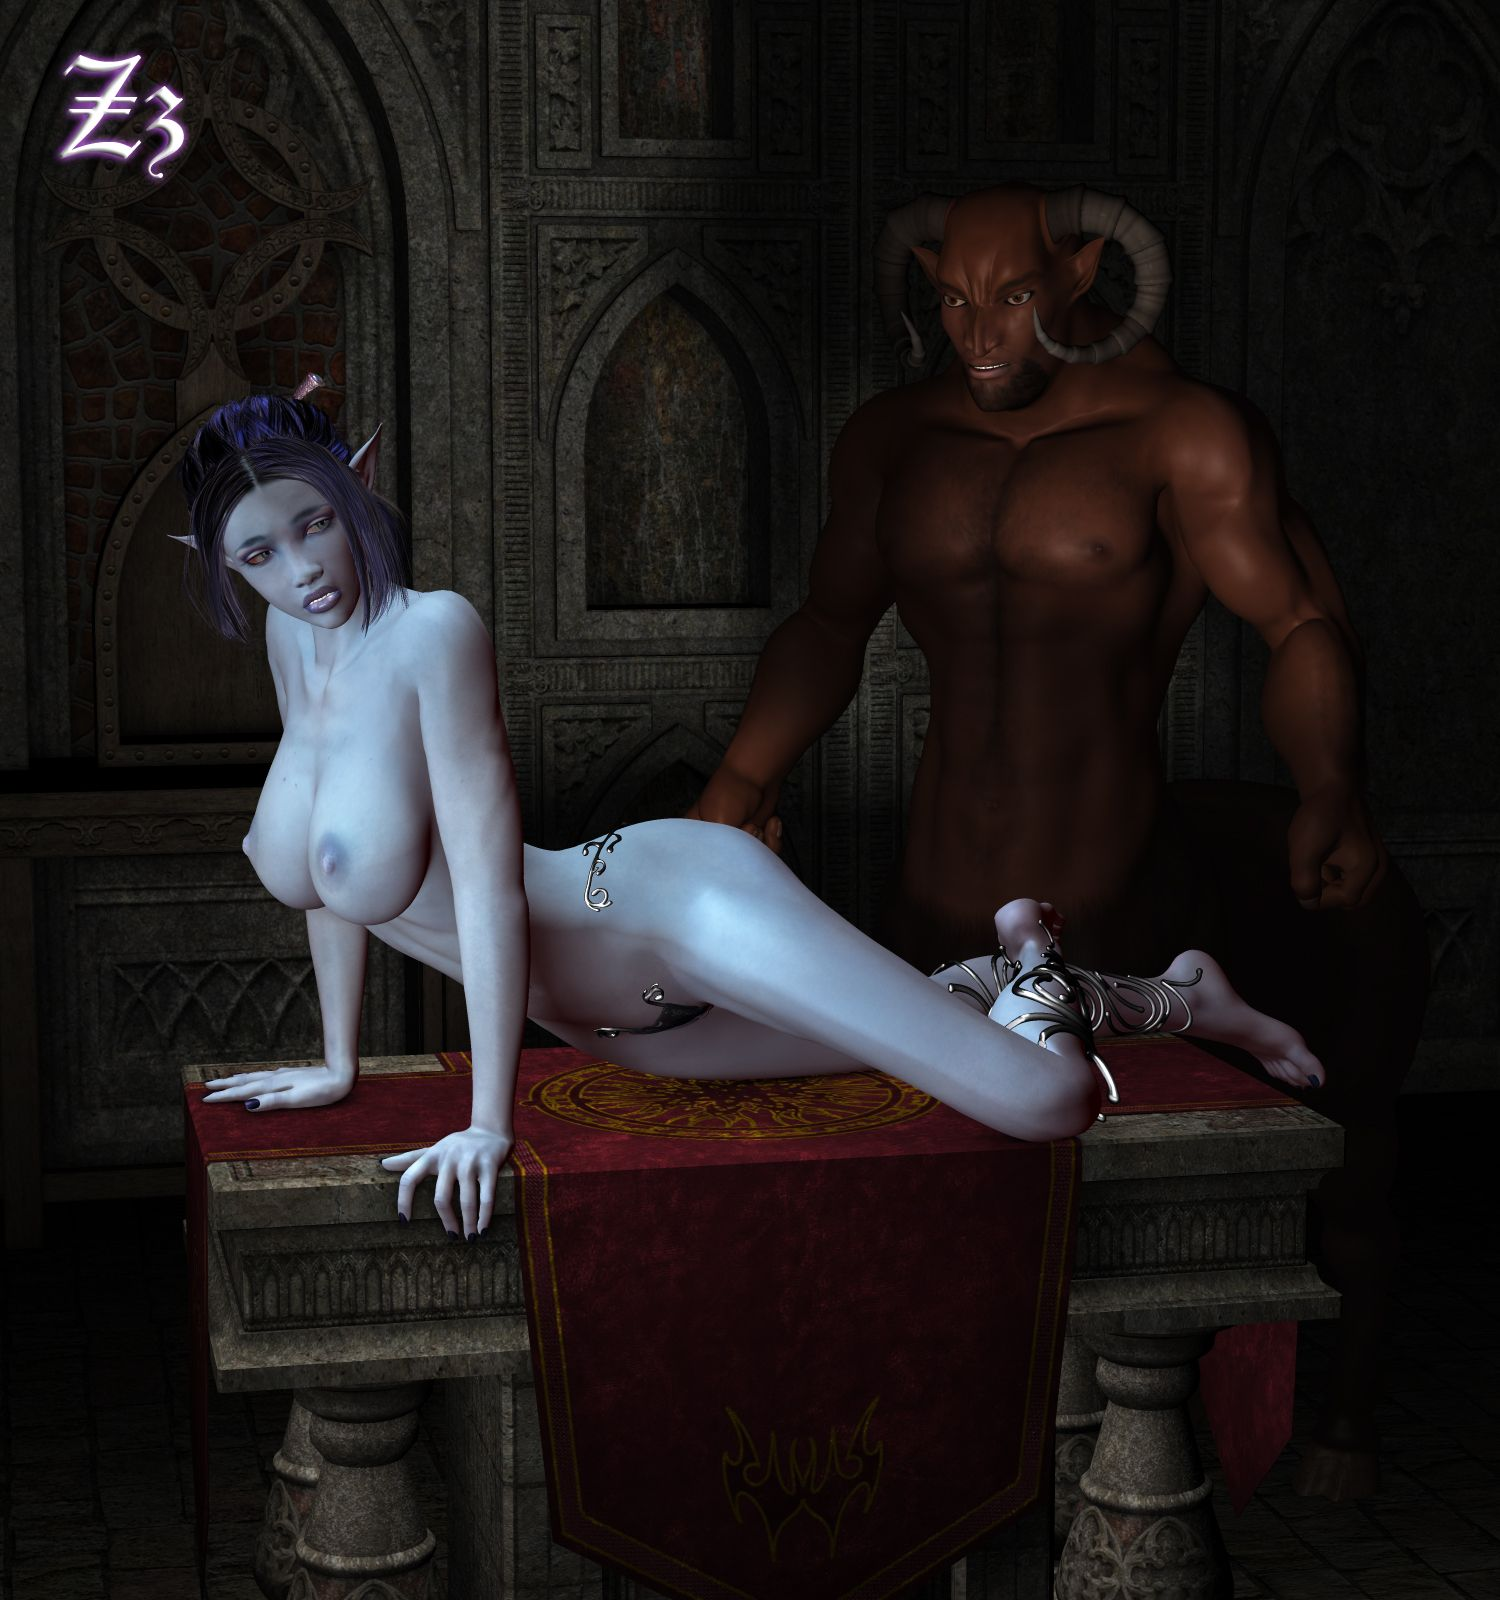 Pale skinned elves pic porn pics nude pictures